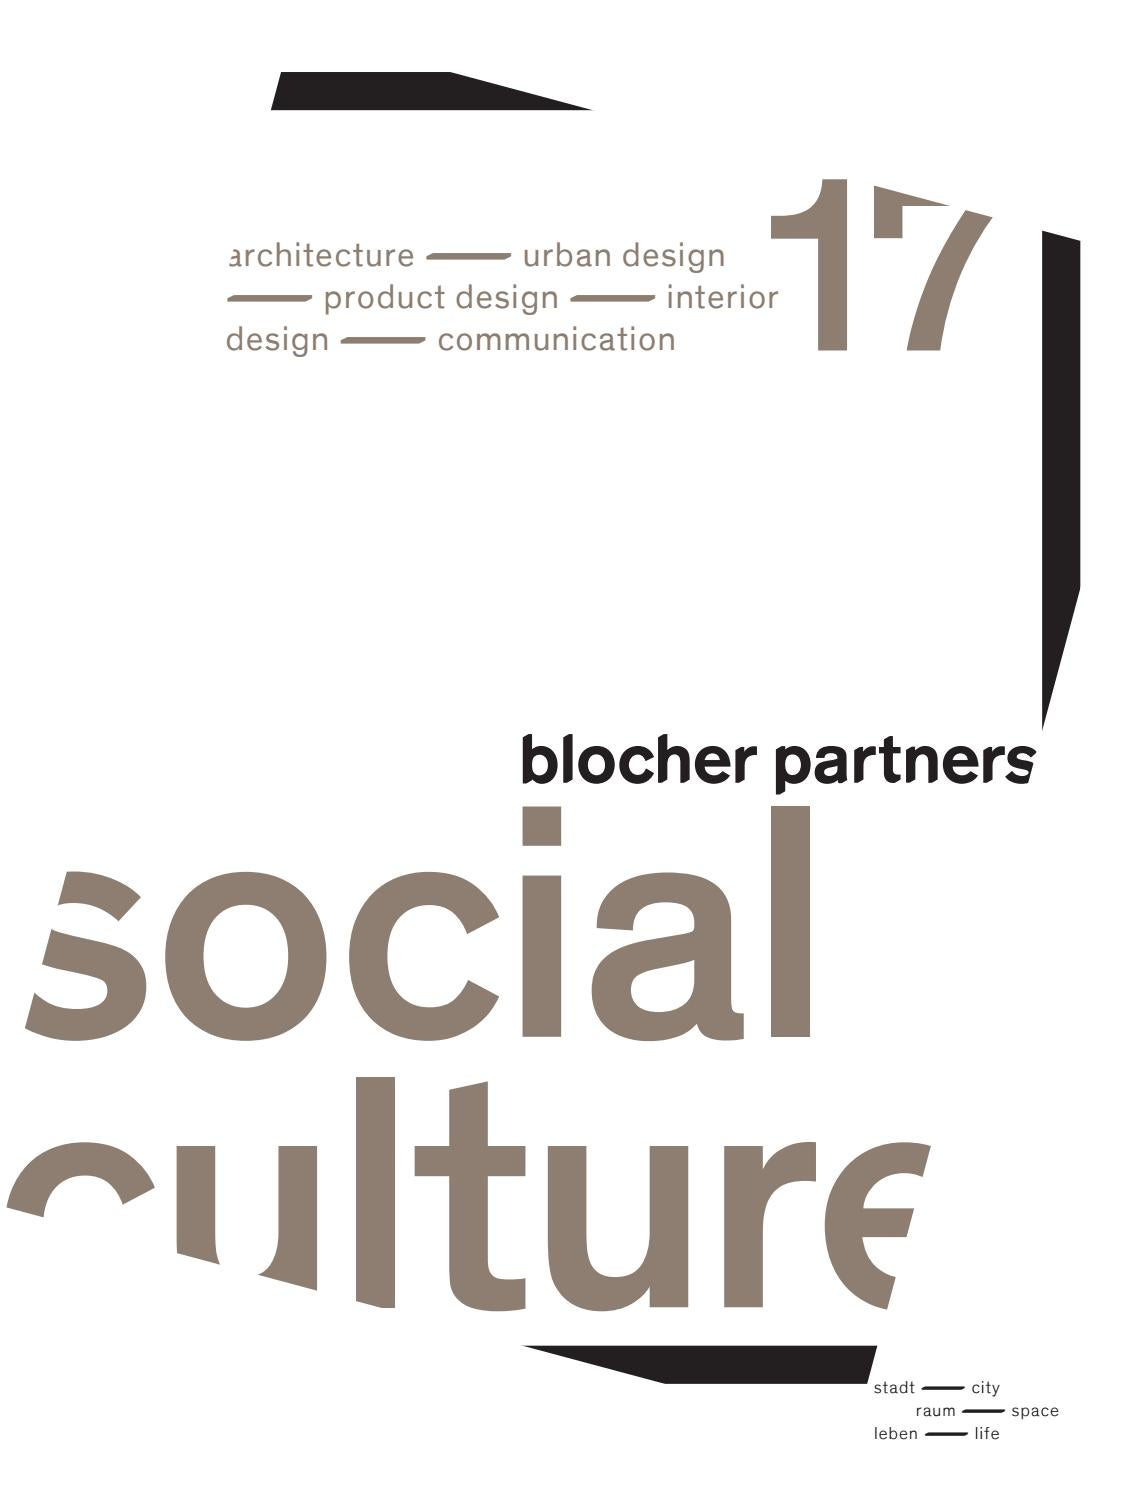 blocher partners social culture 2017 by typenraum - issuu